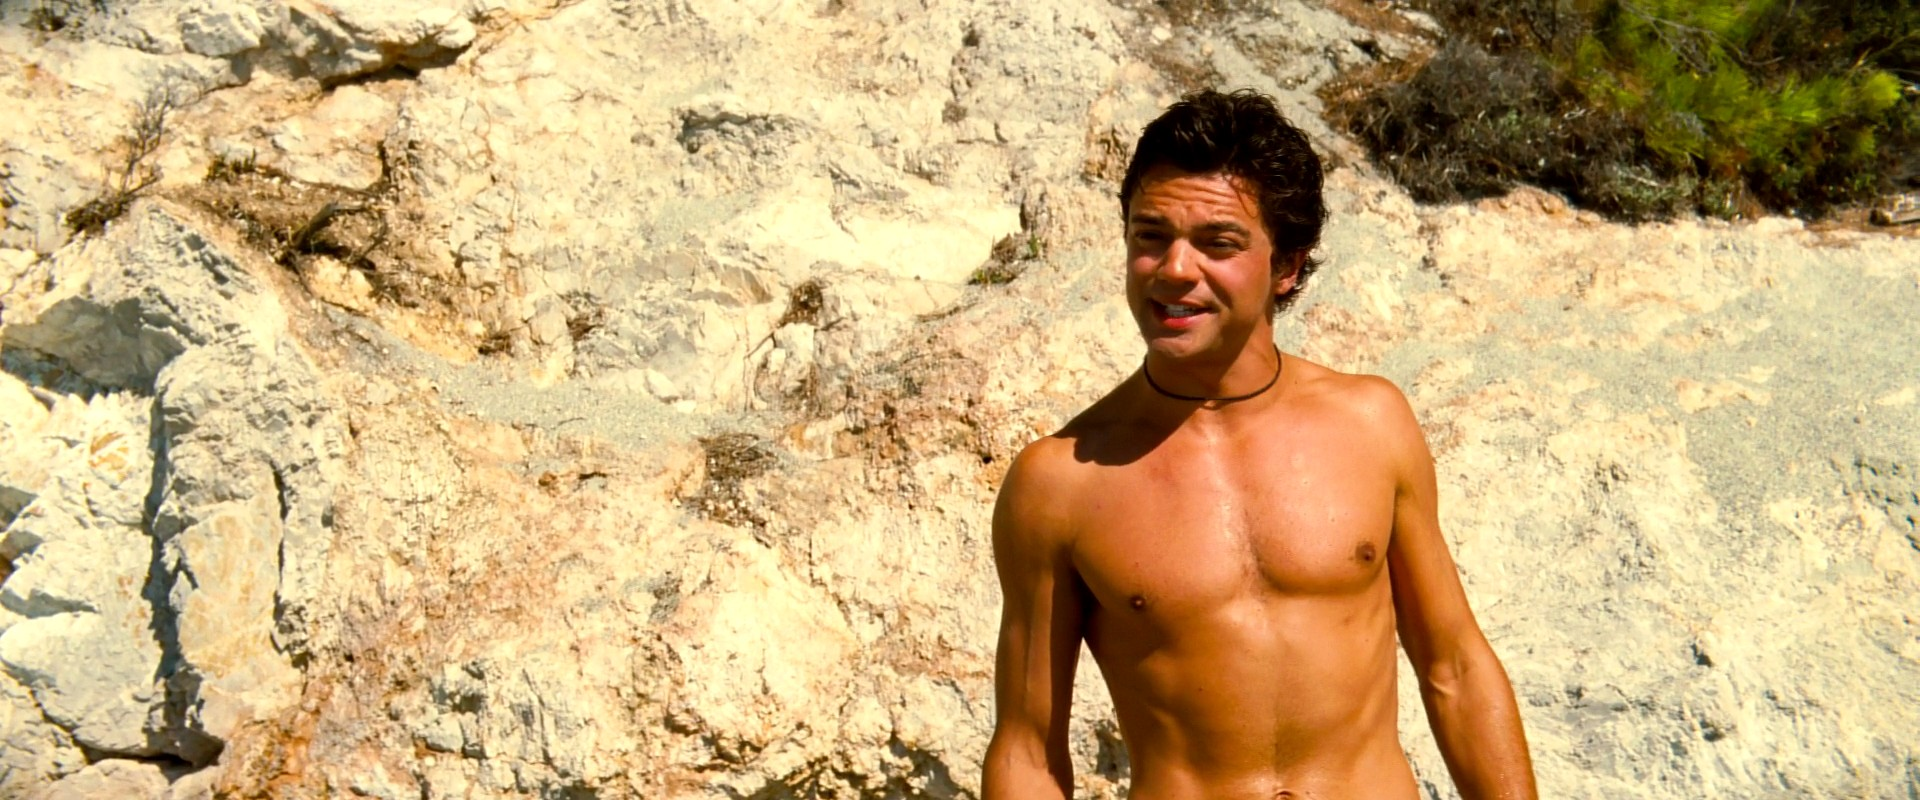 Dominic Cooper younger photo one at Pinterest.com